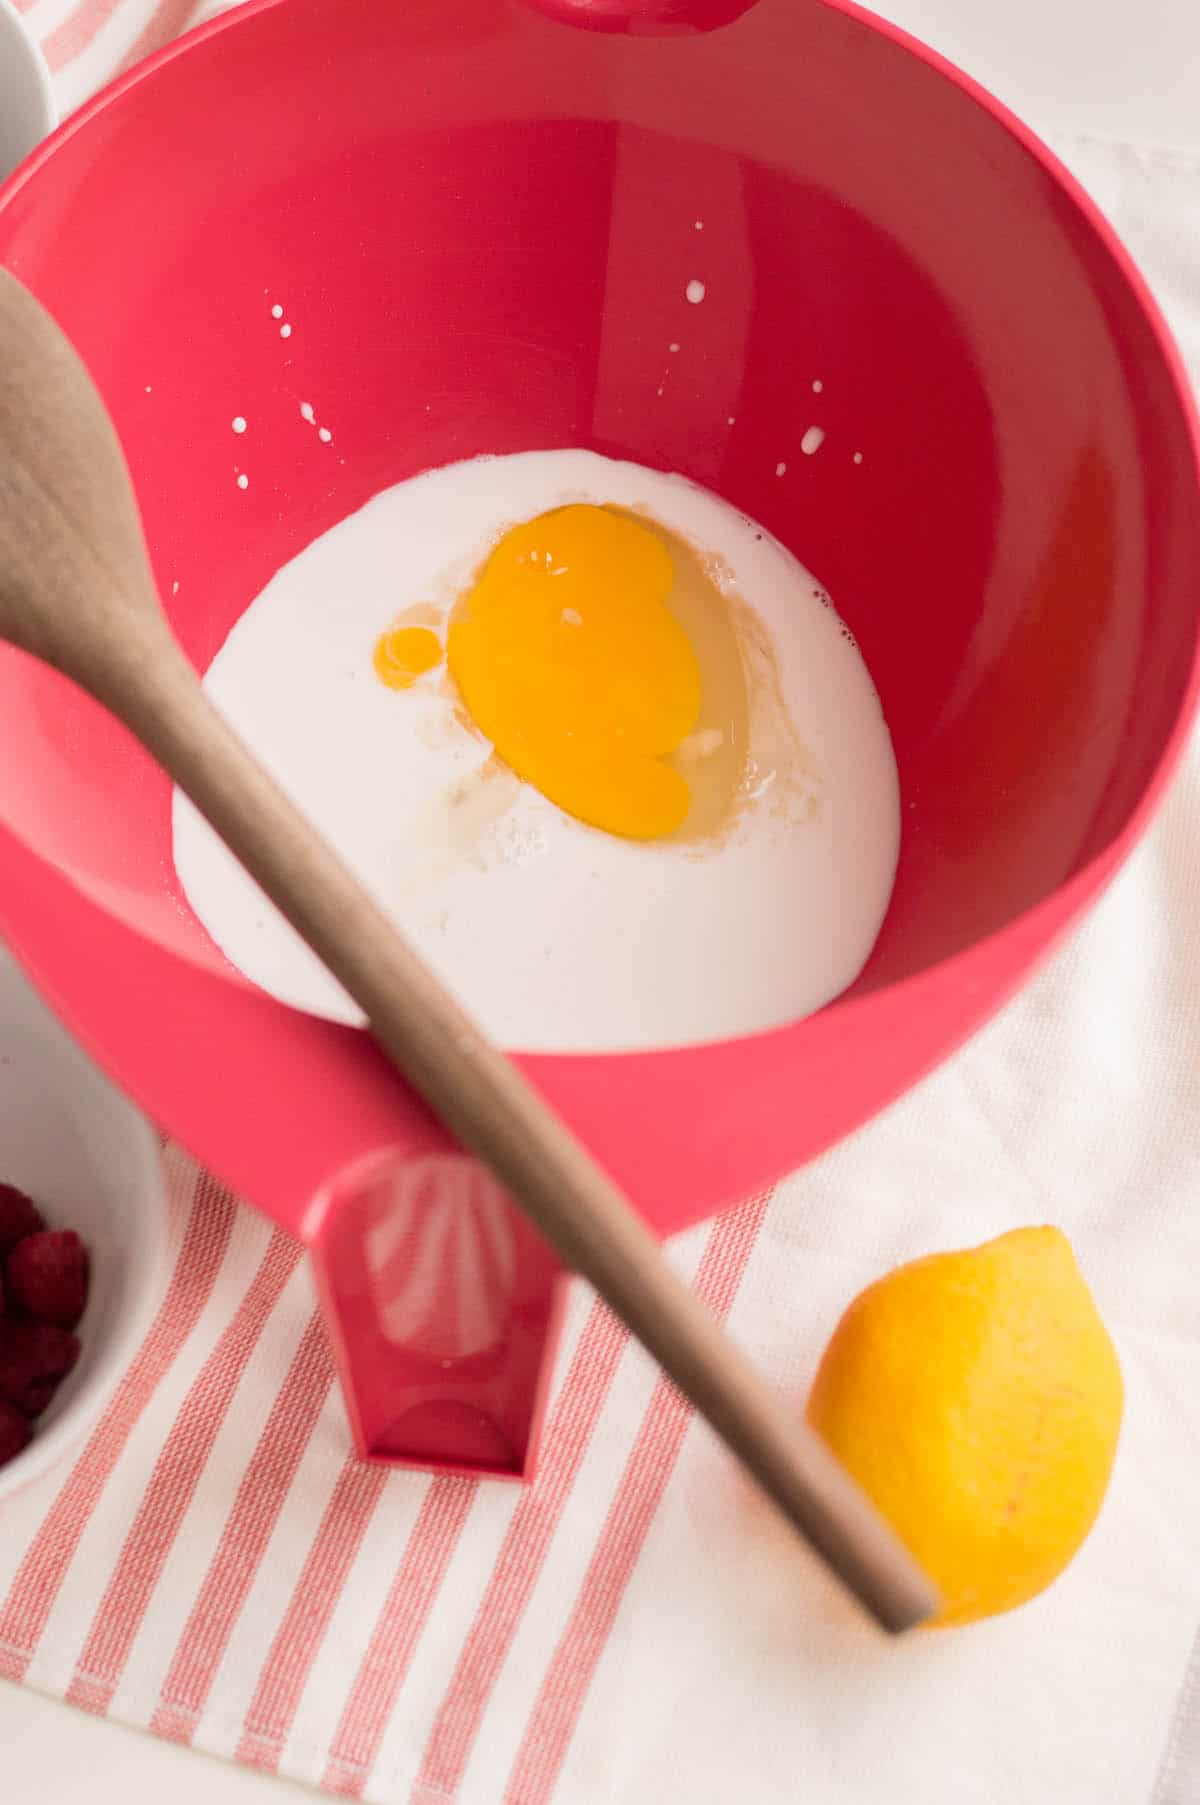 Egg and milk in red bowl on striped dishtowel.